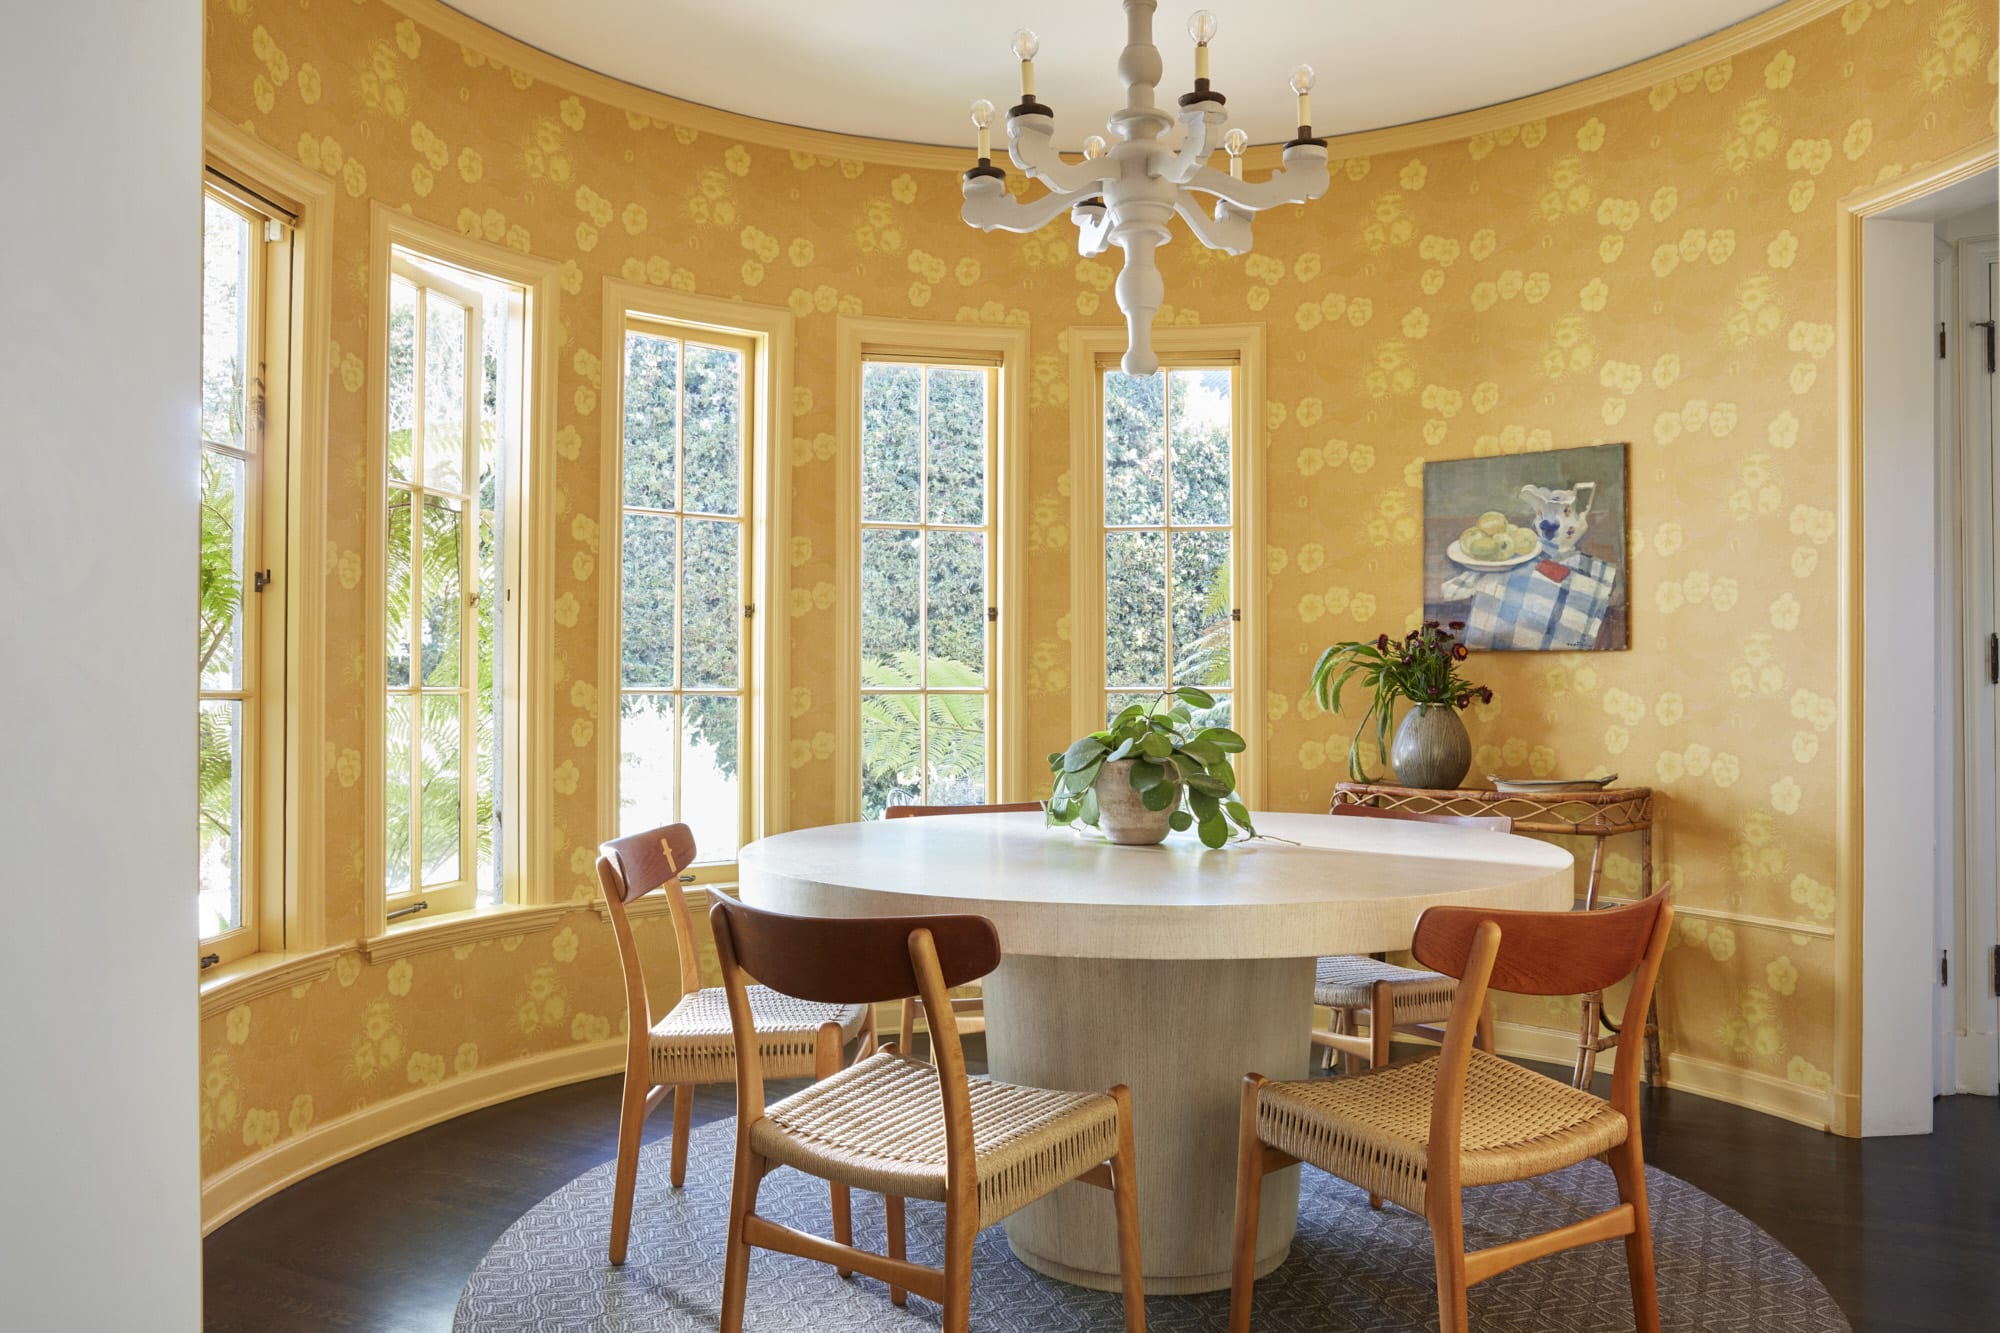 The family dining room of the Los Feliz home designed by Nickey Kehoe.